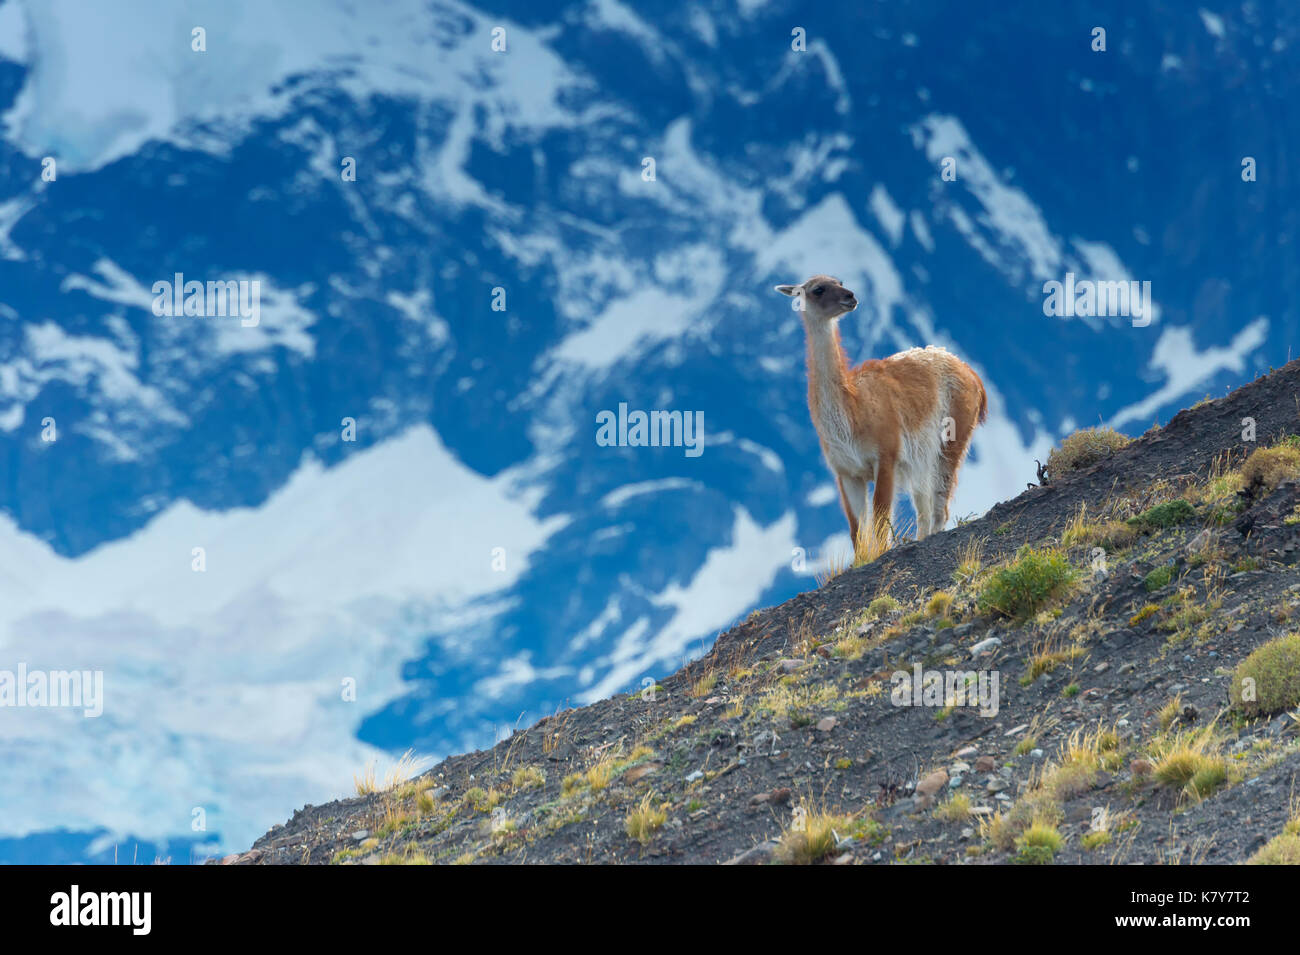 Guanaco (Lama guanicoe) on a ridge, Torres del Paine National Park, Chilean Patagonia, Chile - Stock Image